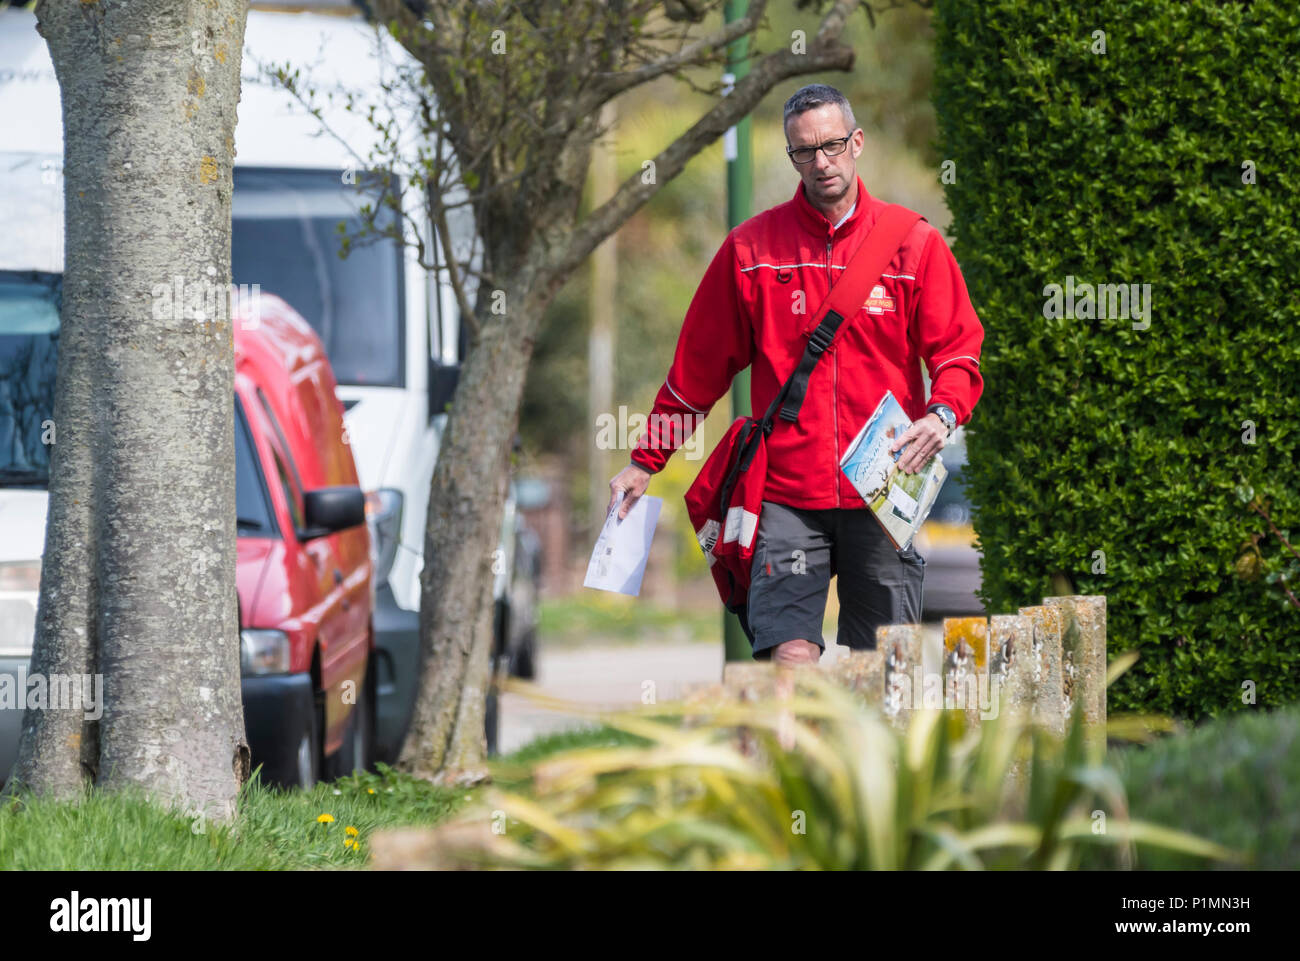 Royal Mail Postman walking carrying letters for delivery in England, UK. - Stock Image